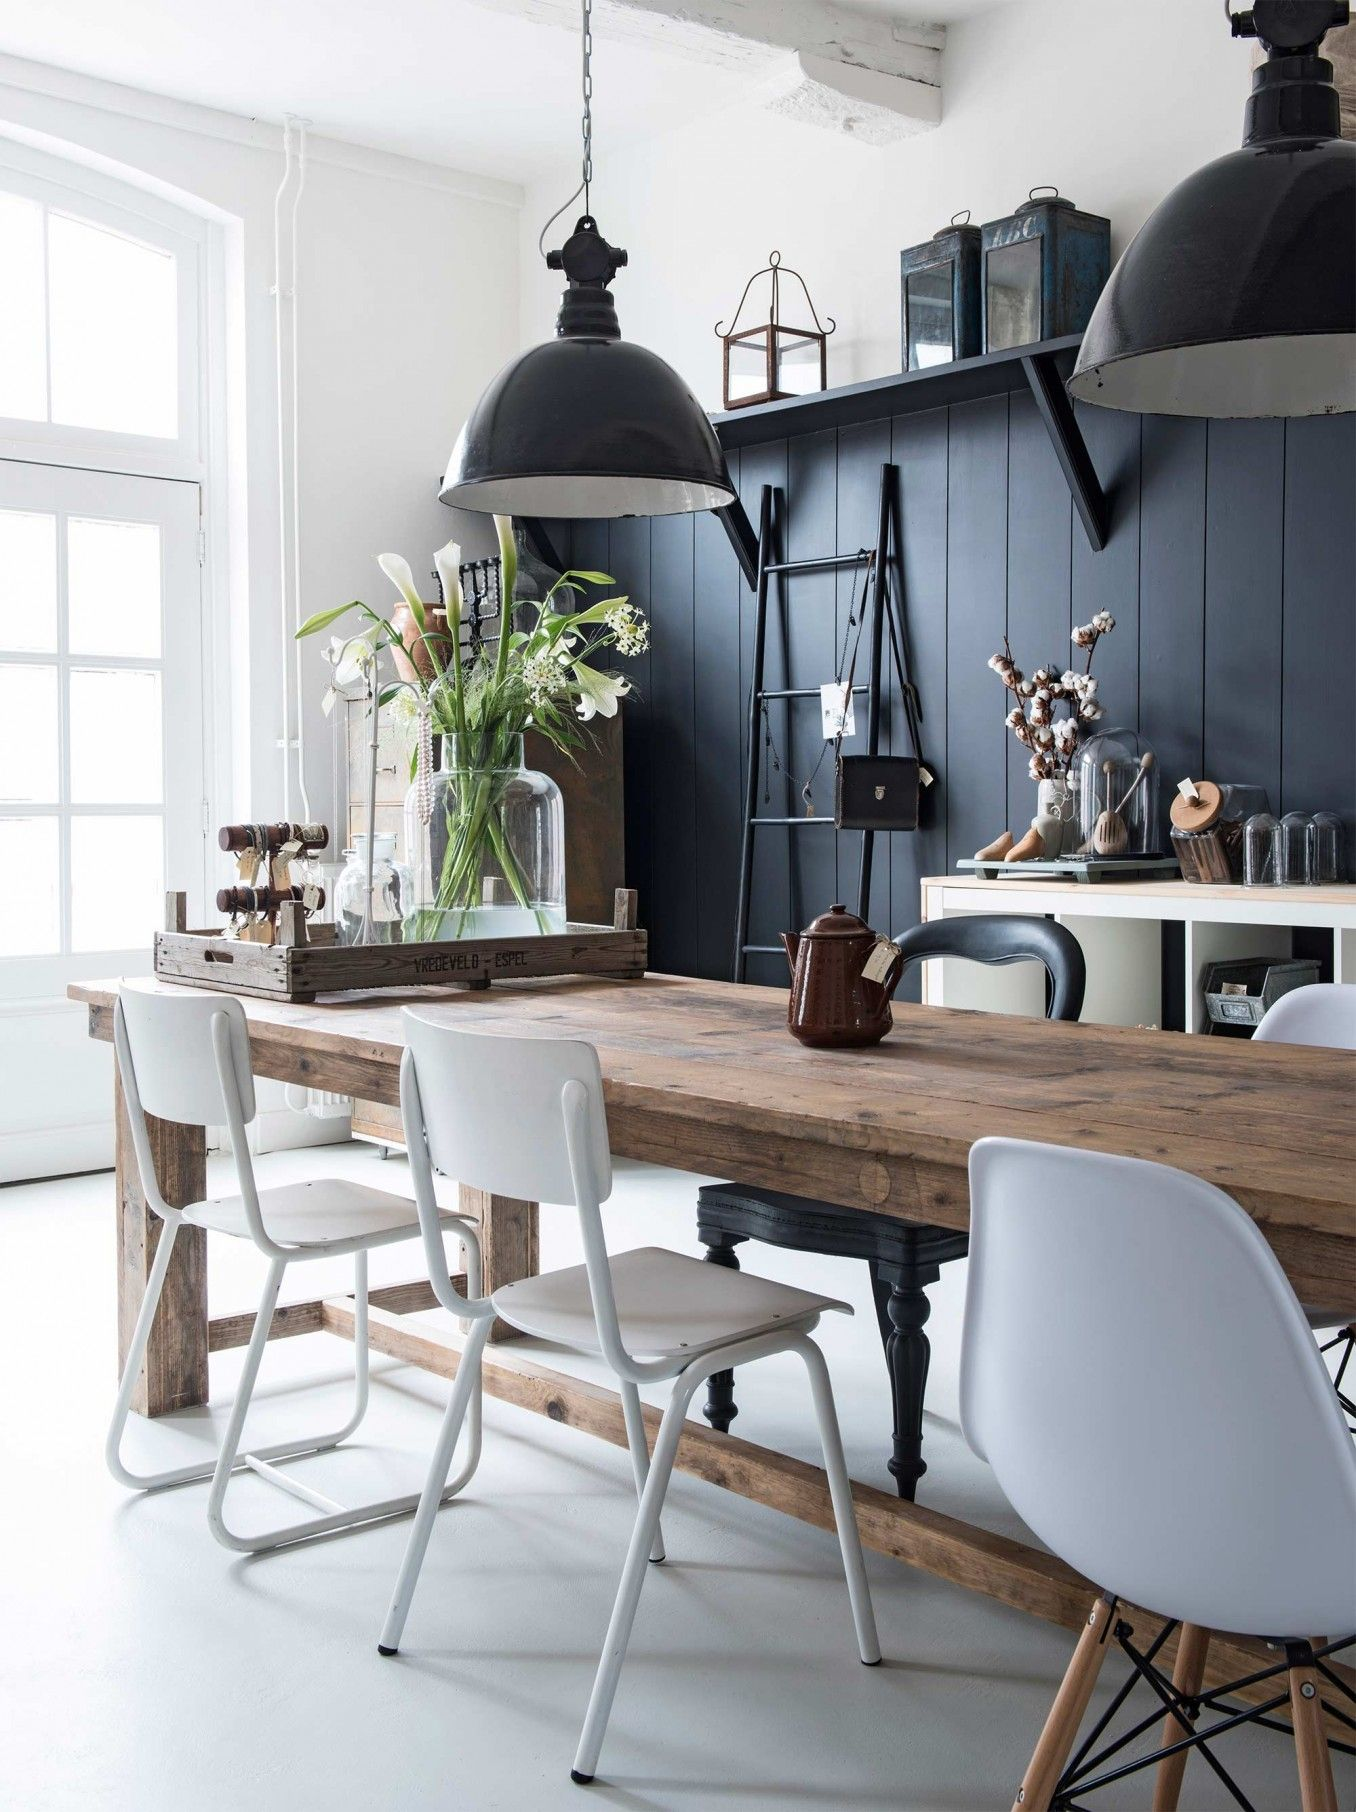 Une maison rustique chic aux Pays Bas | Industrial, Room and Tables